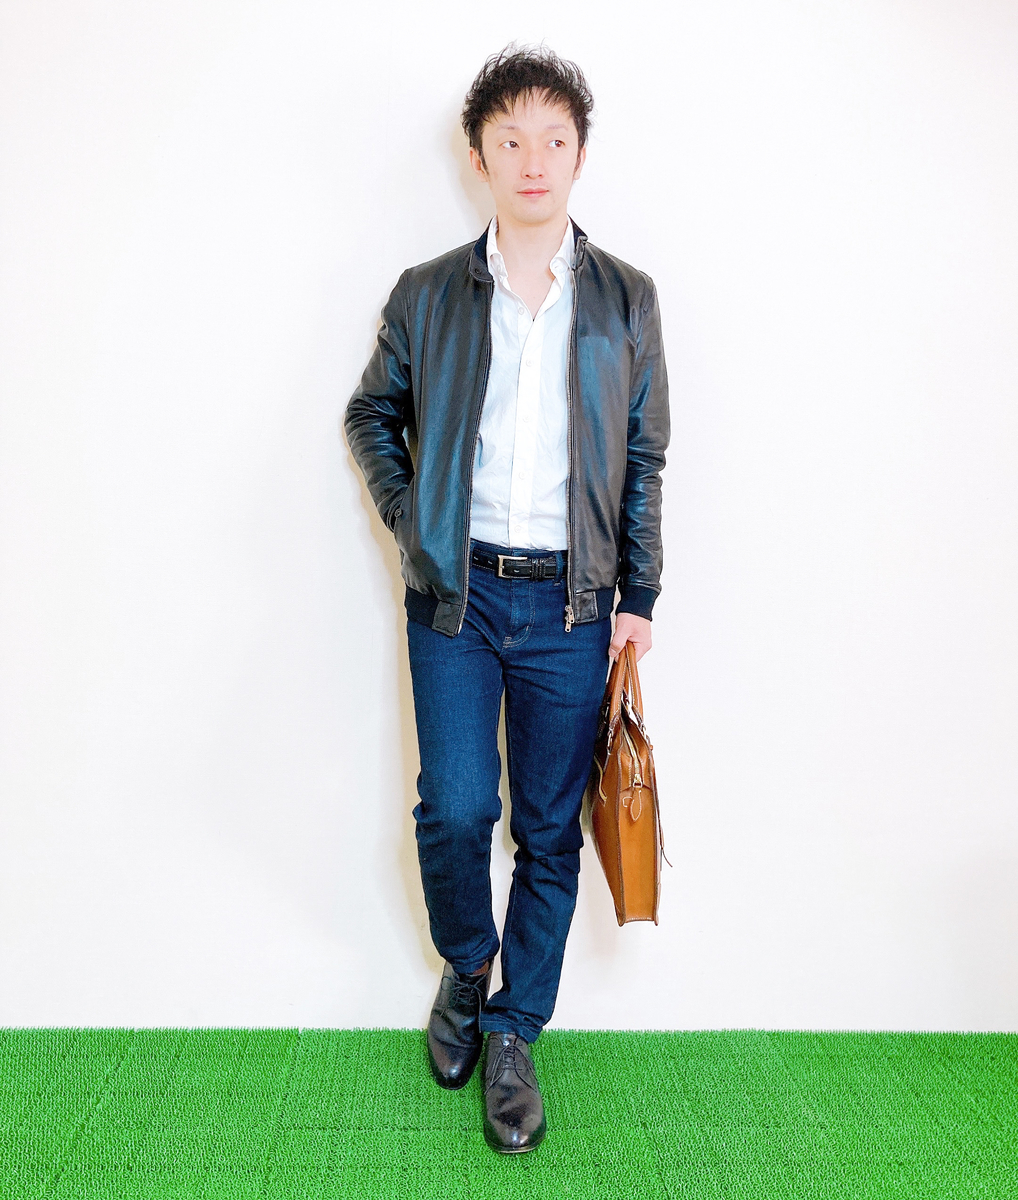 f:id:hamakei-fashion:20210304140038j:plain